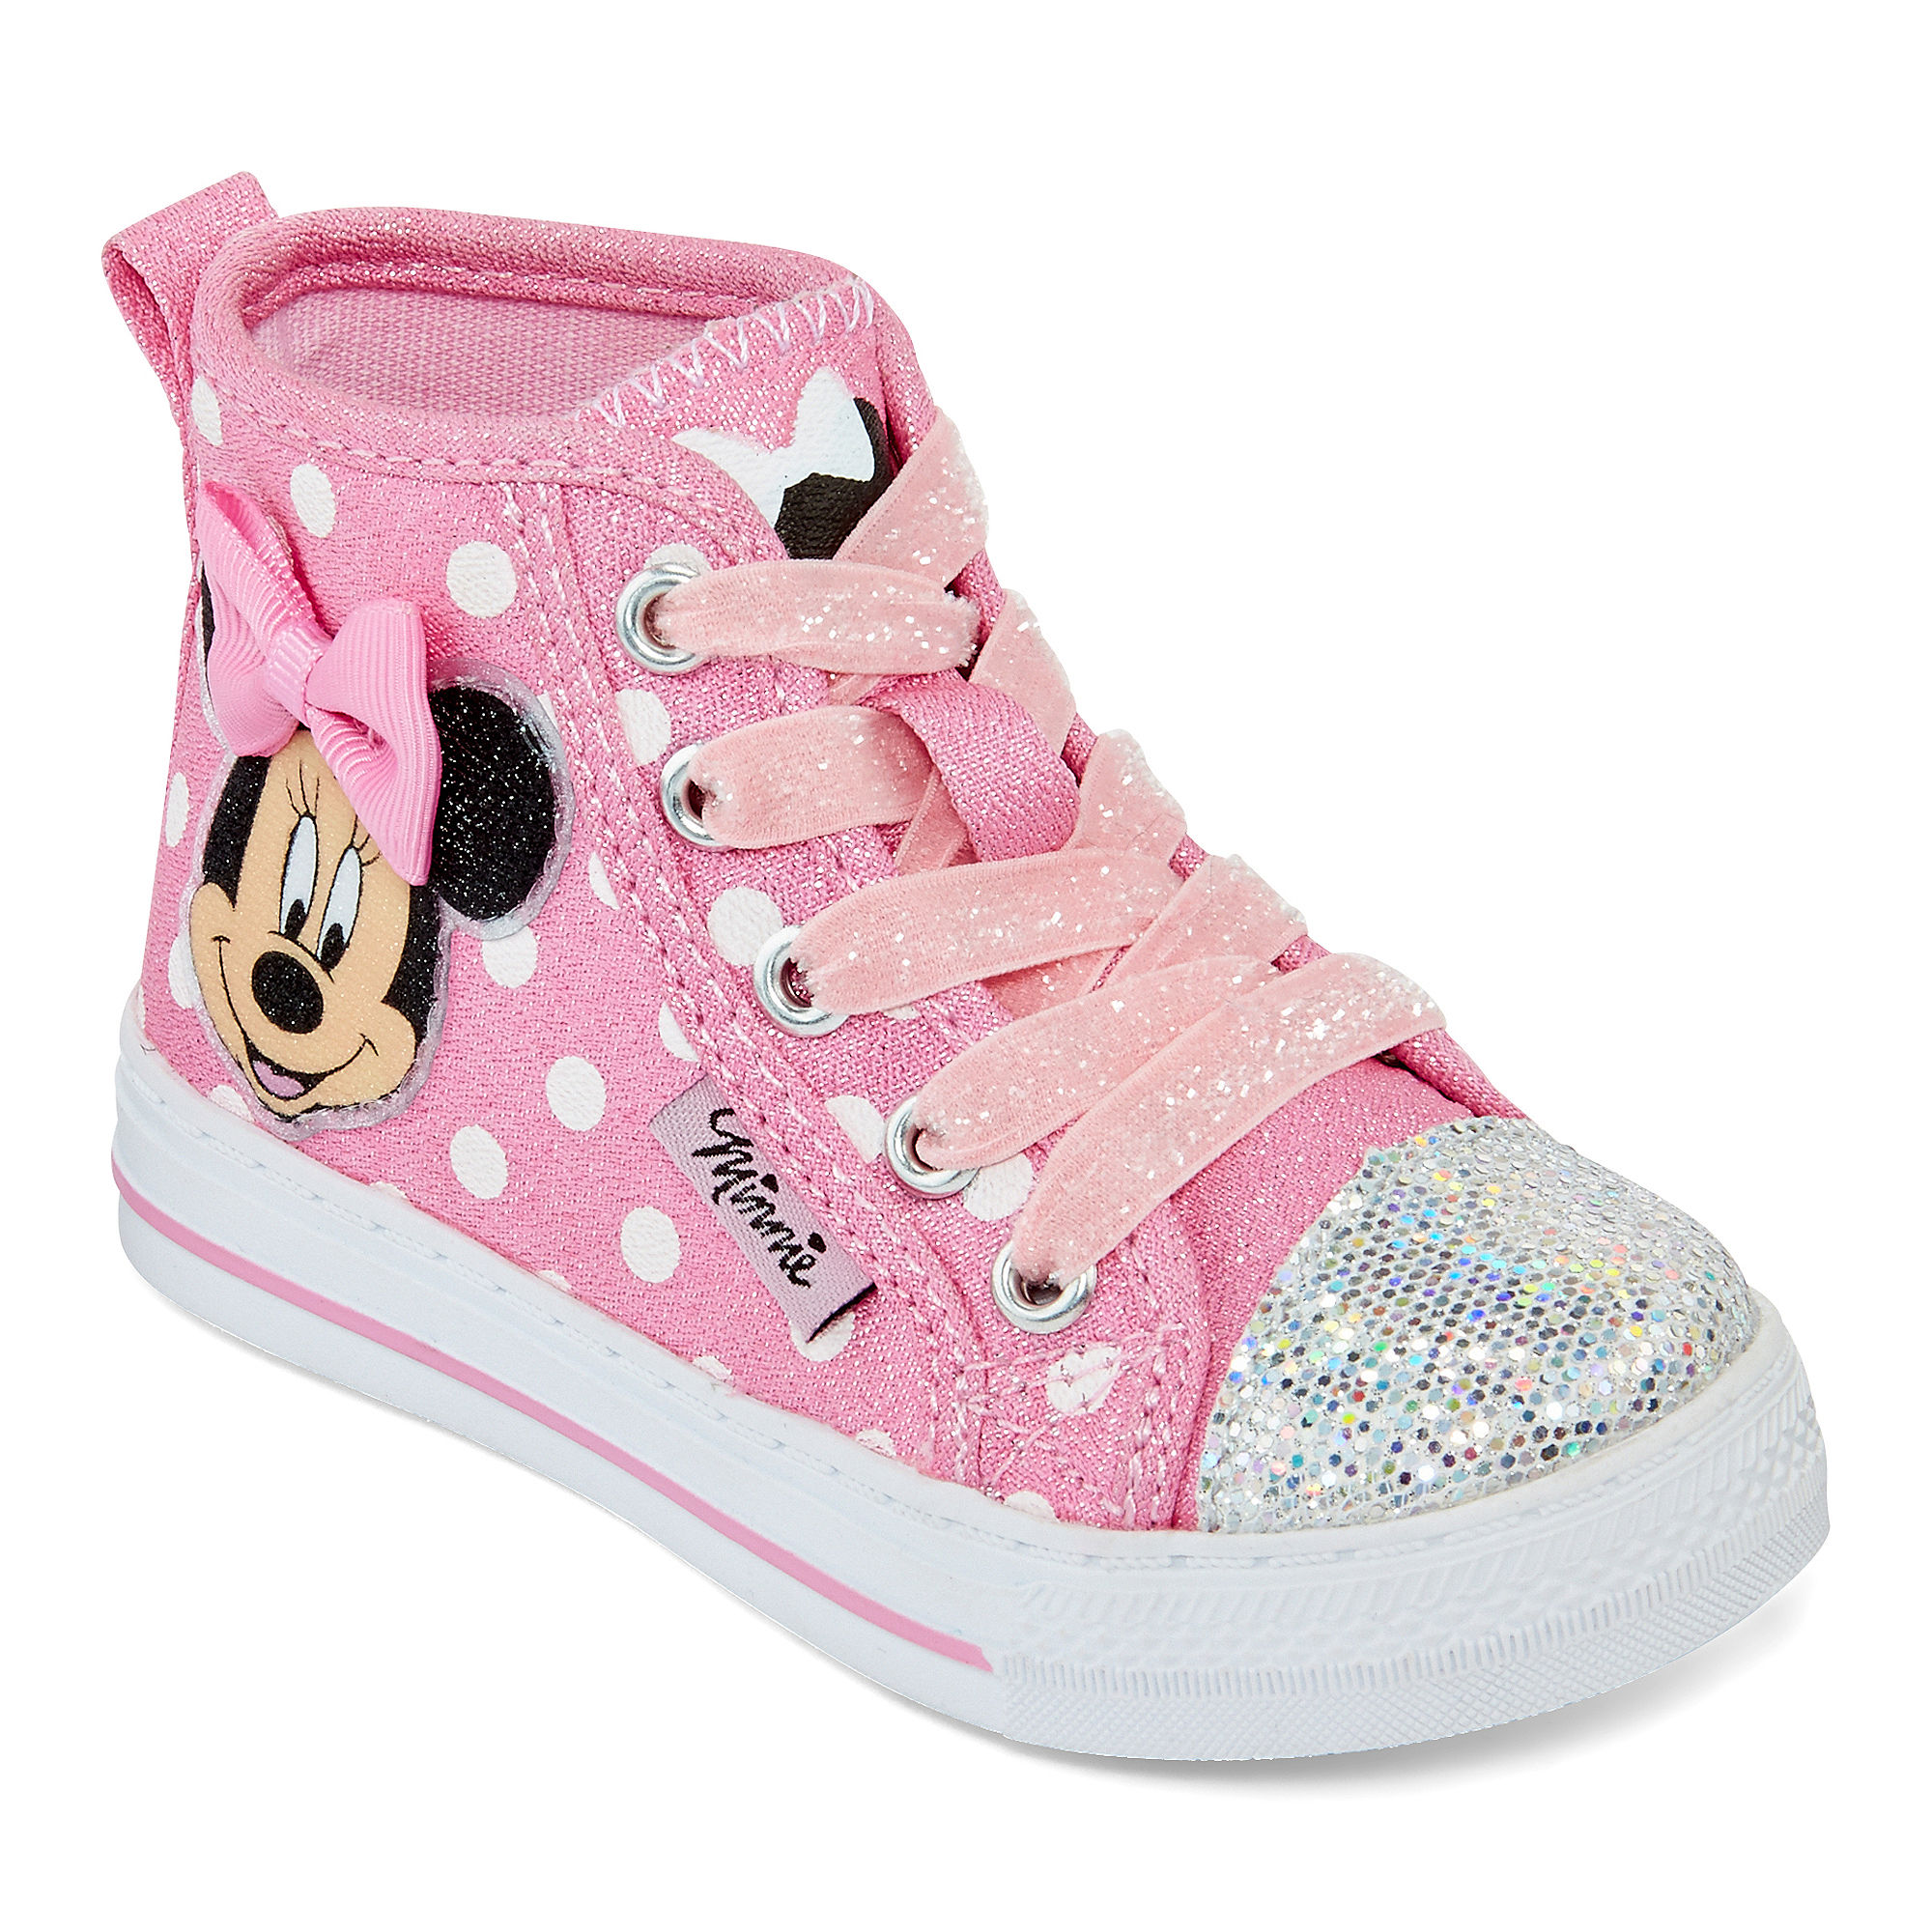 Top Sneakers Minnie Mouse Shoes For Toddlers